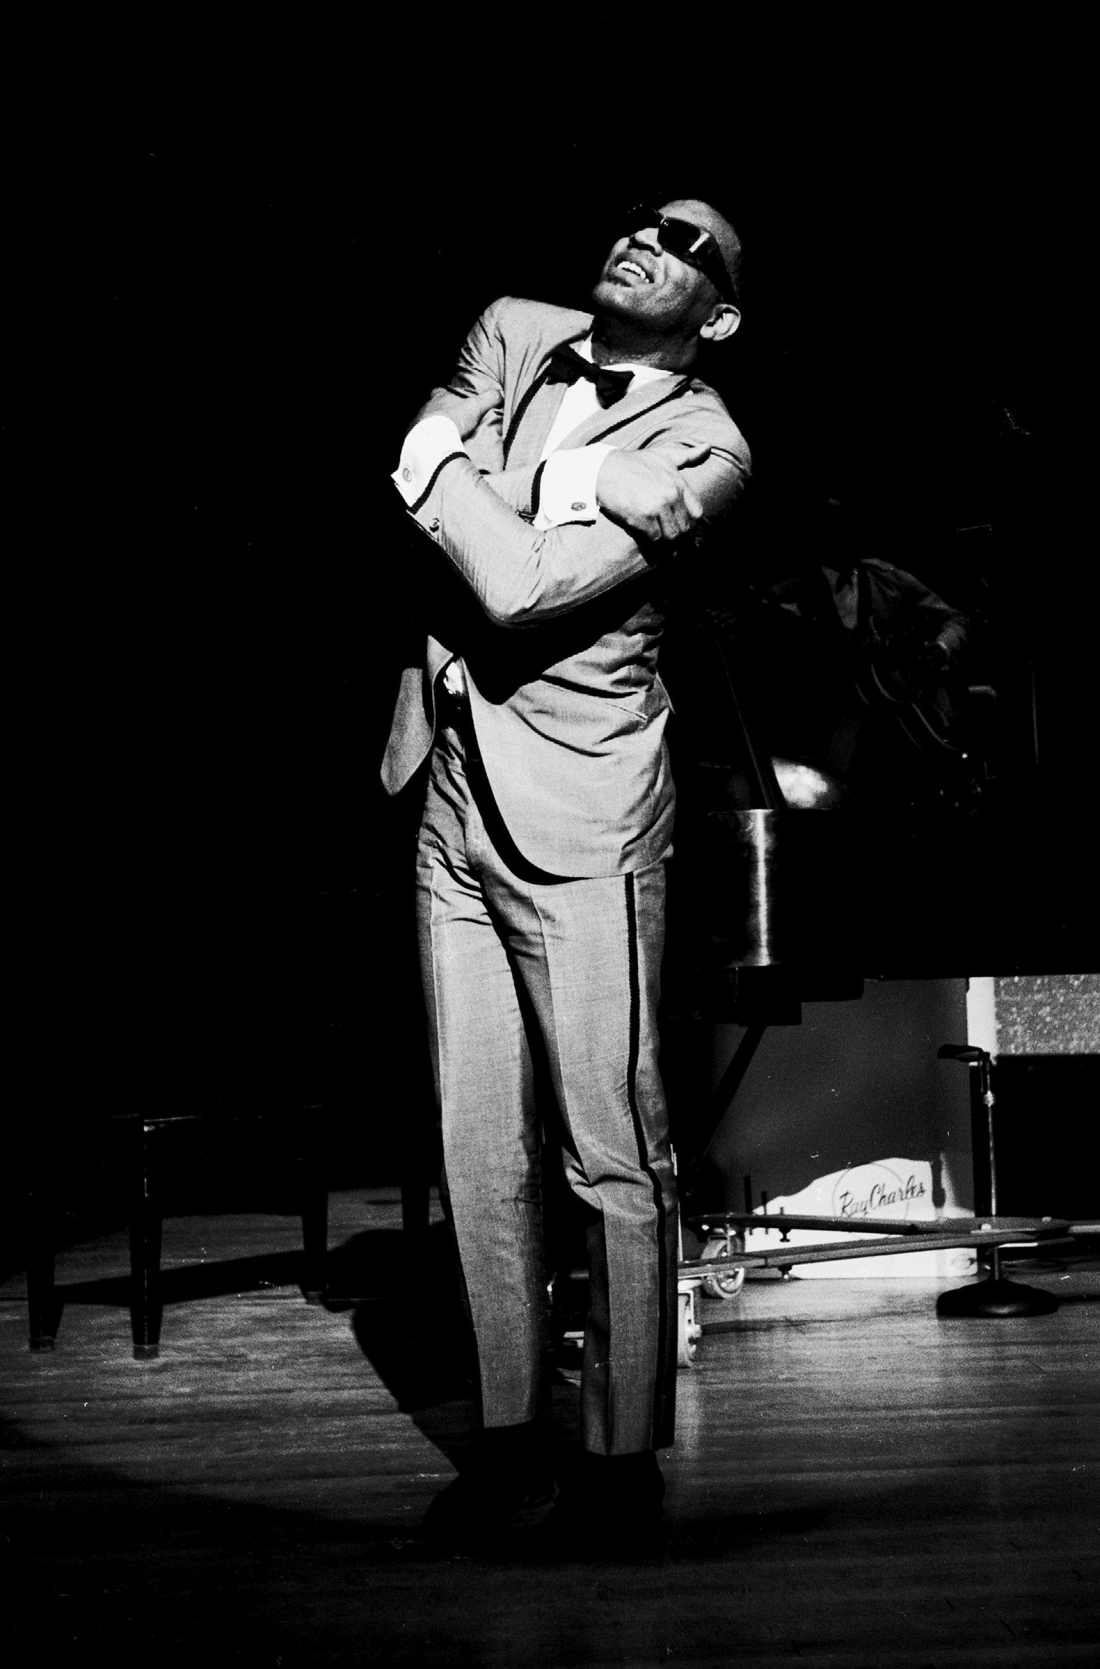 Ray Charles Hugging, New Jersey, 1963. © Steve Schapiro, courtesy Howard Greenberg Gallery, New York